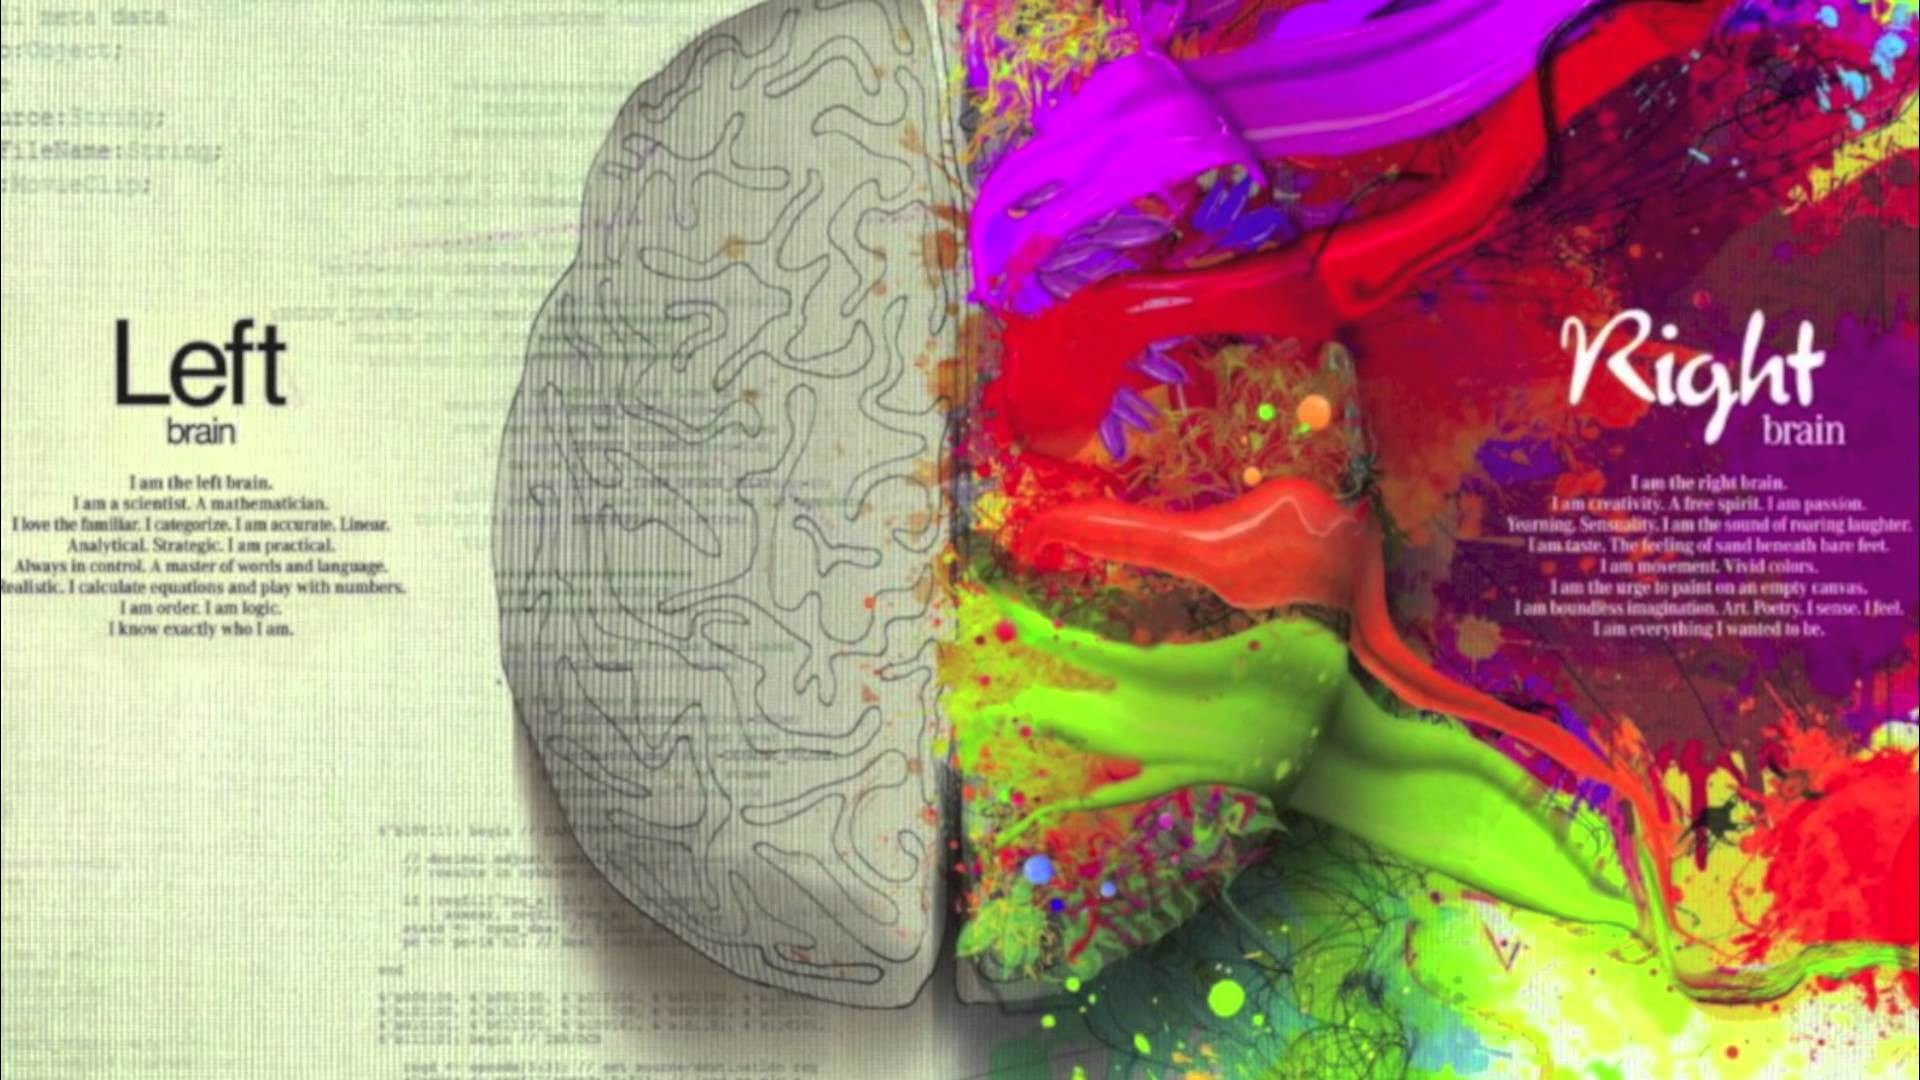 Trends For > Left And Right Brain Wallpaper